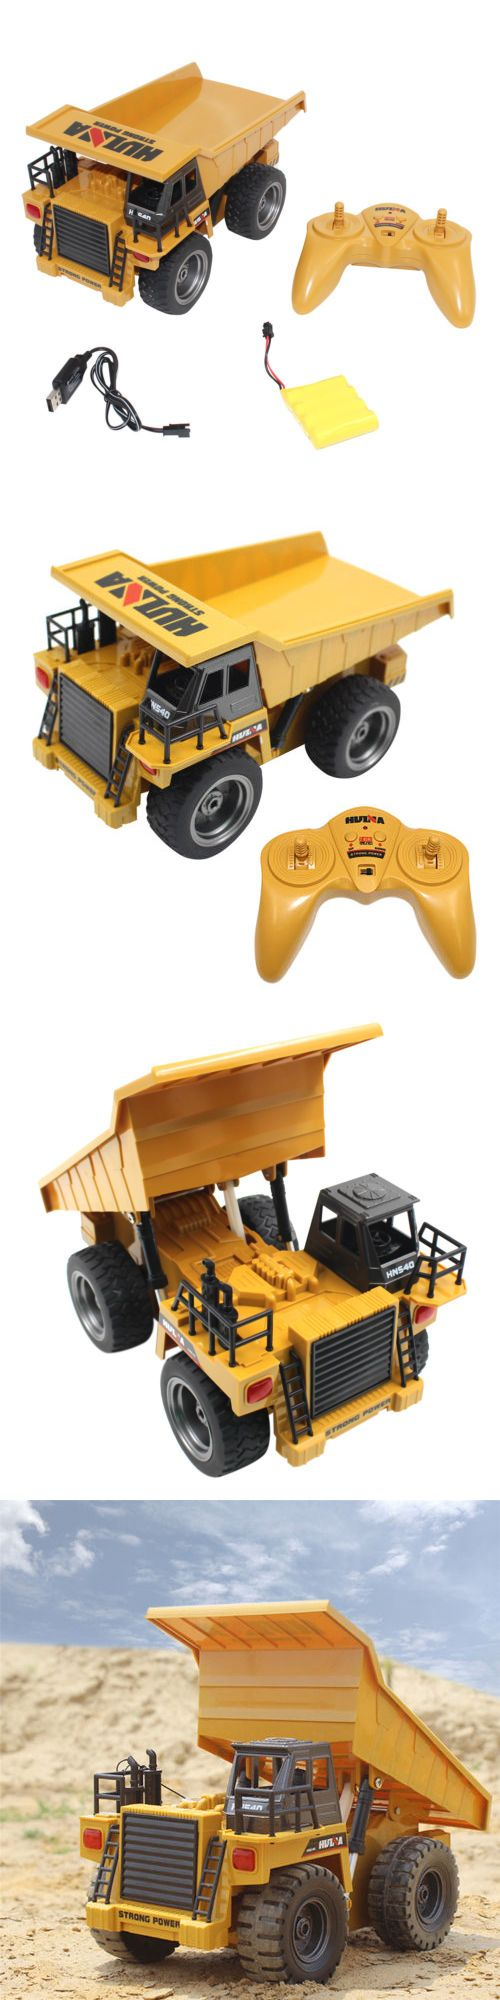 Industrial and Service Vehicles 182184: 2.4G 6 Ch Functional Dump Truck Toy Car Vehicle Electric Rc Remote Control Model -> BUY IT NOW ONLY: $47.69 on eBay!